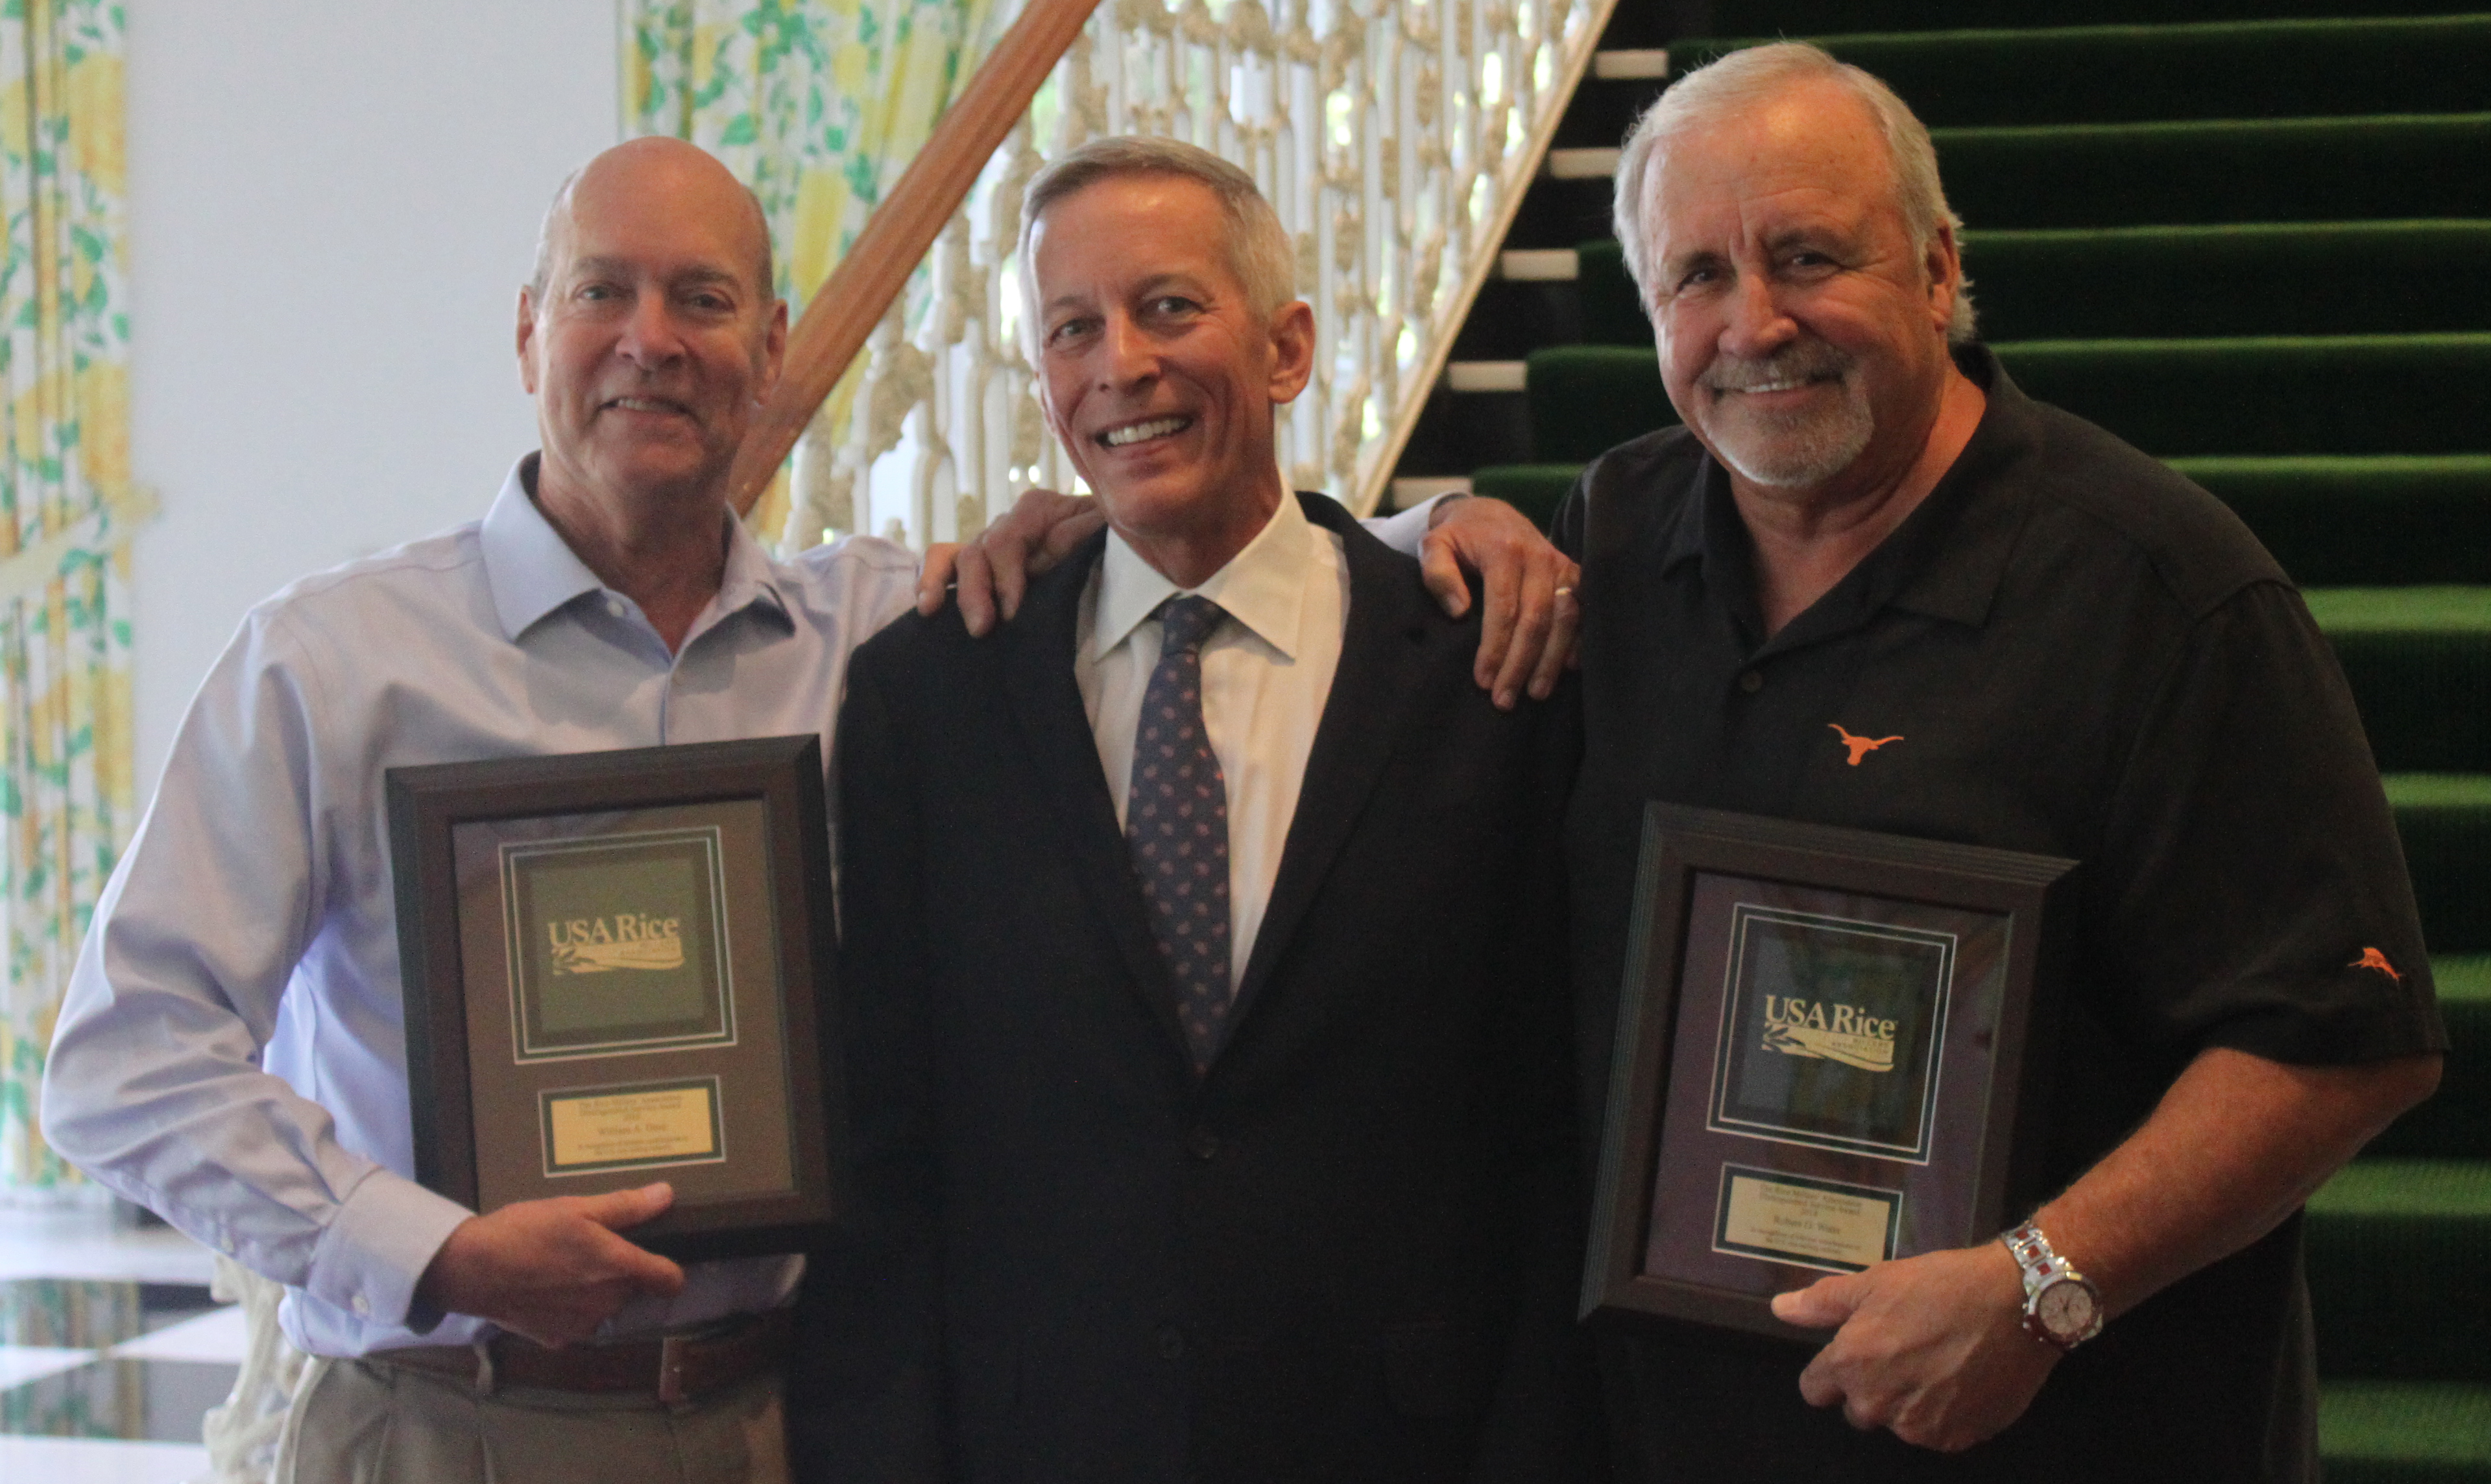 KBX, Inc. President Steven Keith presents Distinguished Service Awards to two RMA members:  Bill Dore (left) and Bob Watts (right)